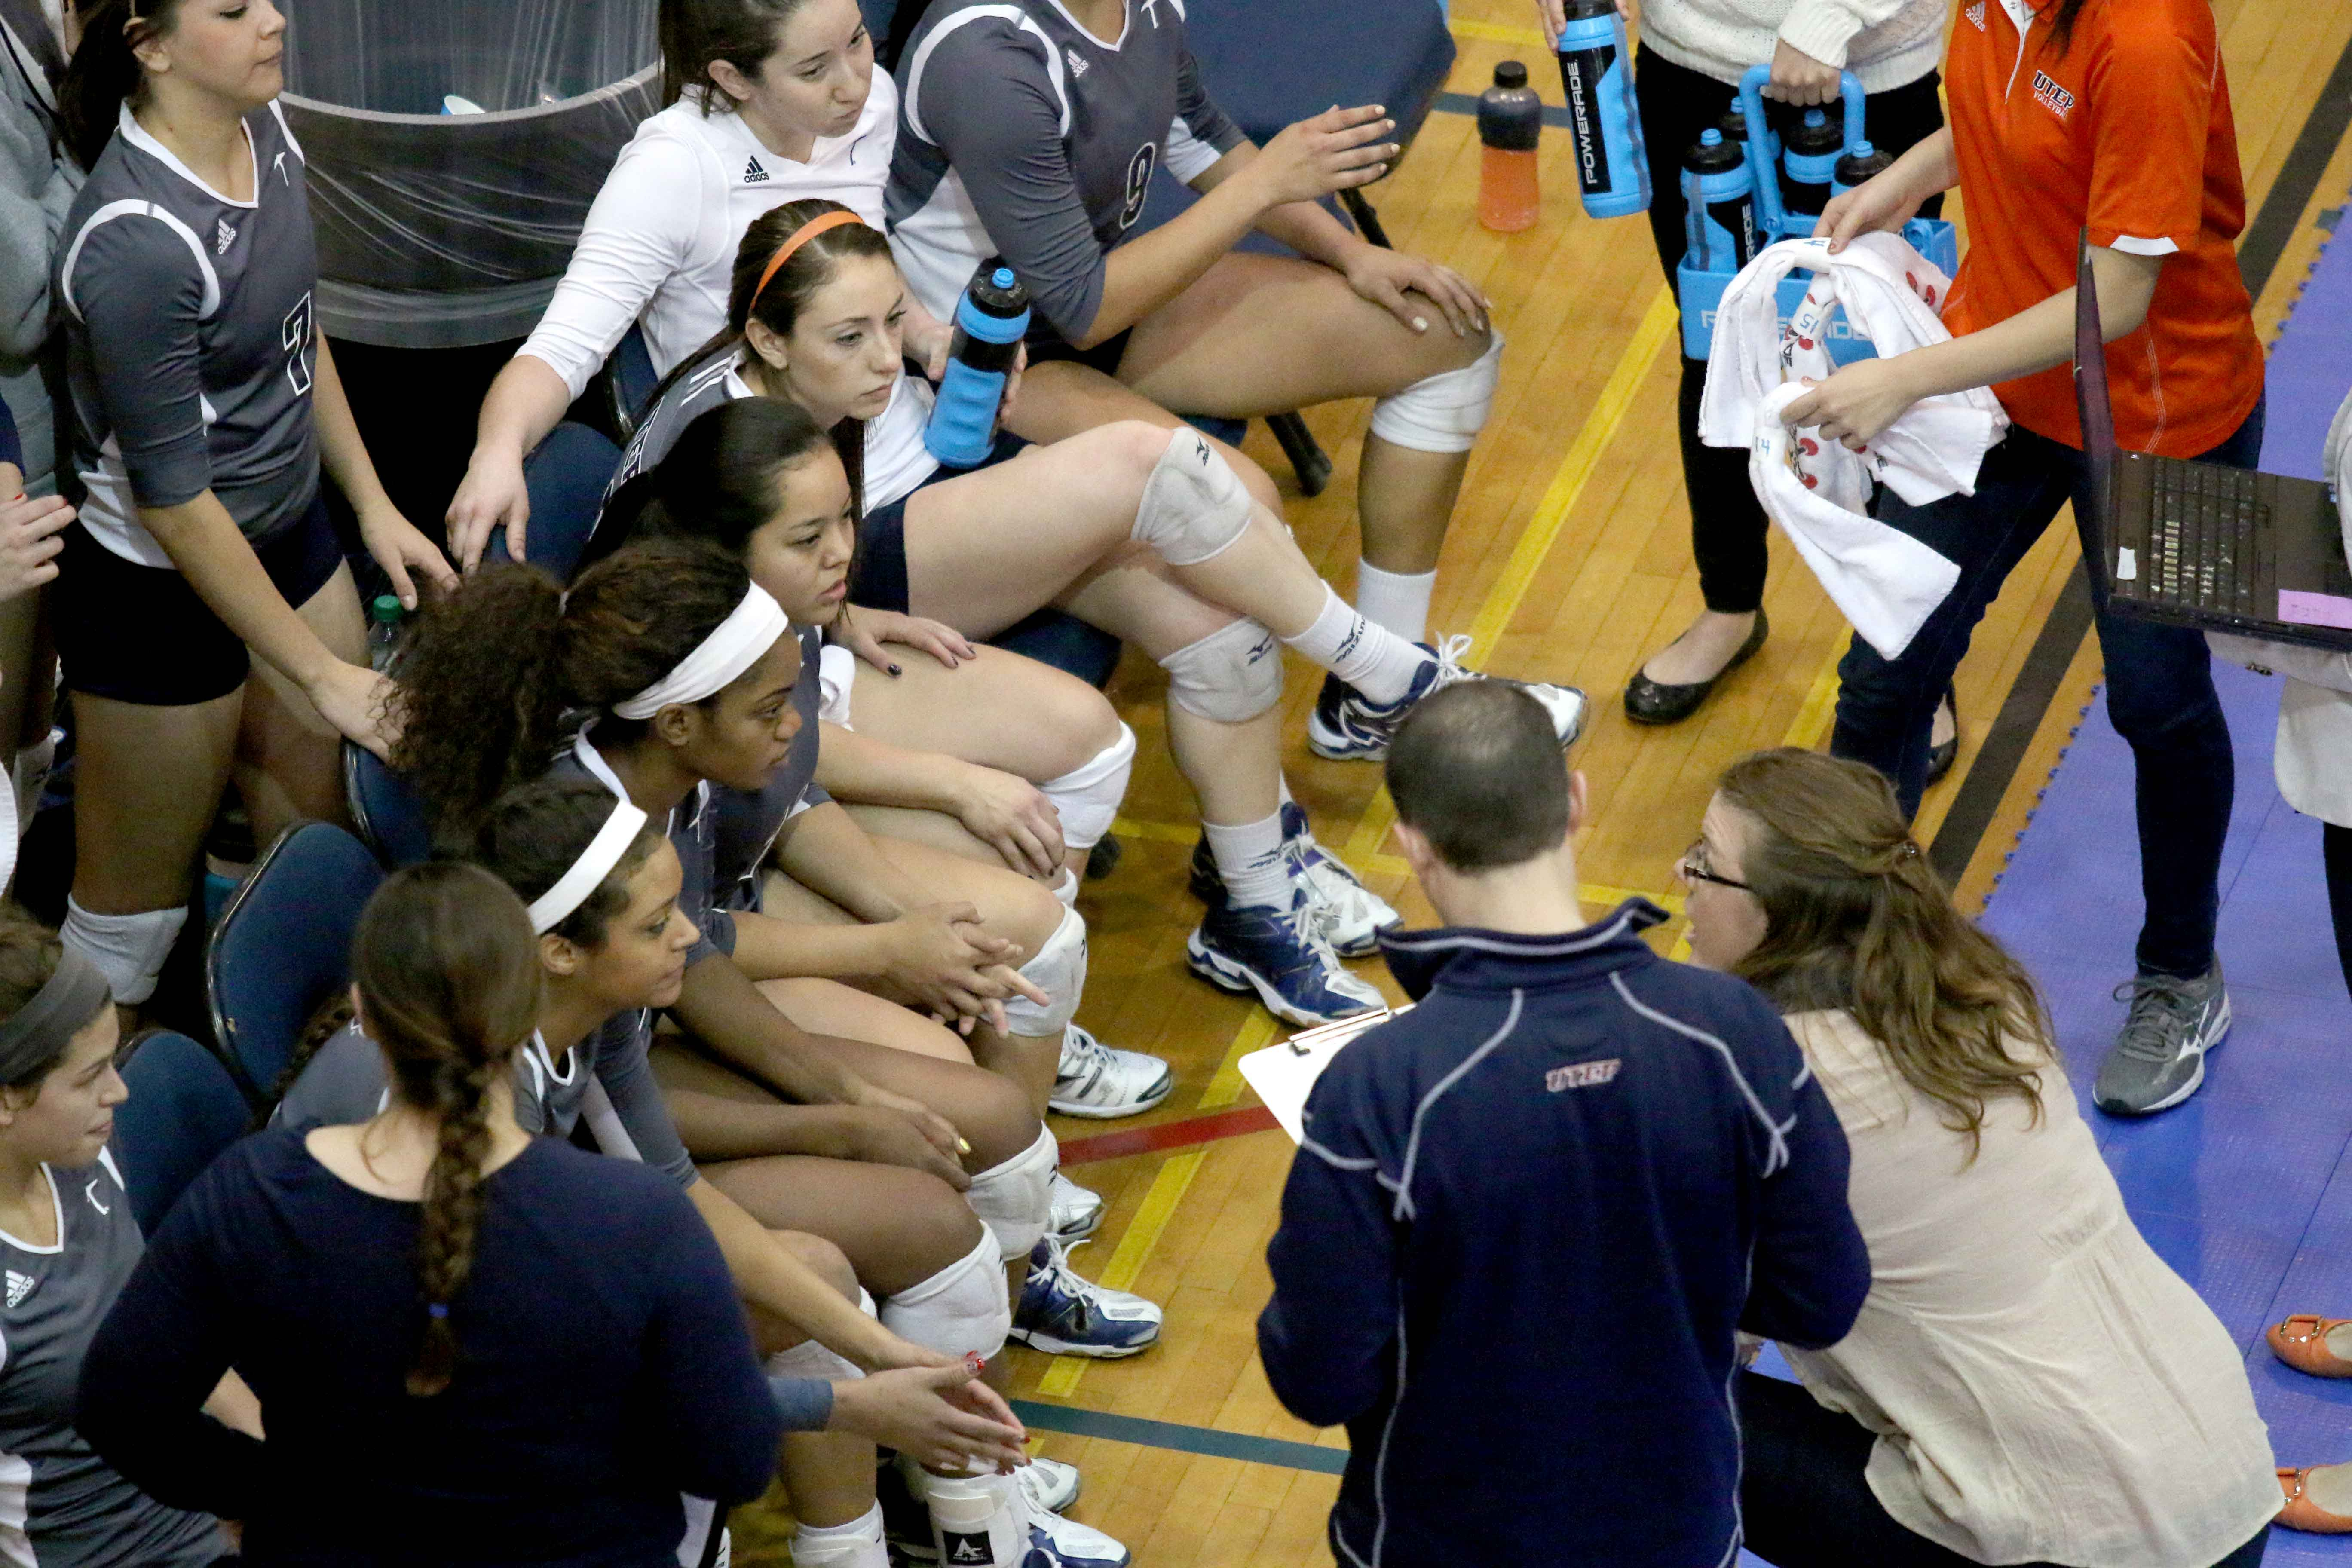 The UTEP Volleyball team was 1-11 at home and 4-7 in away matches.